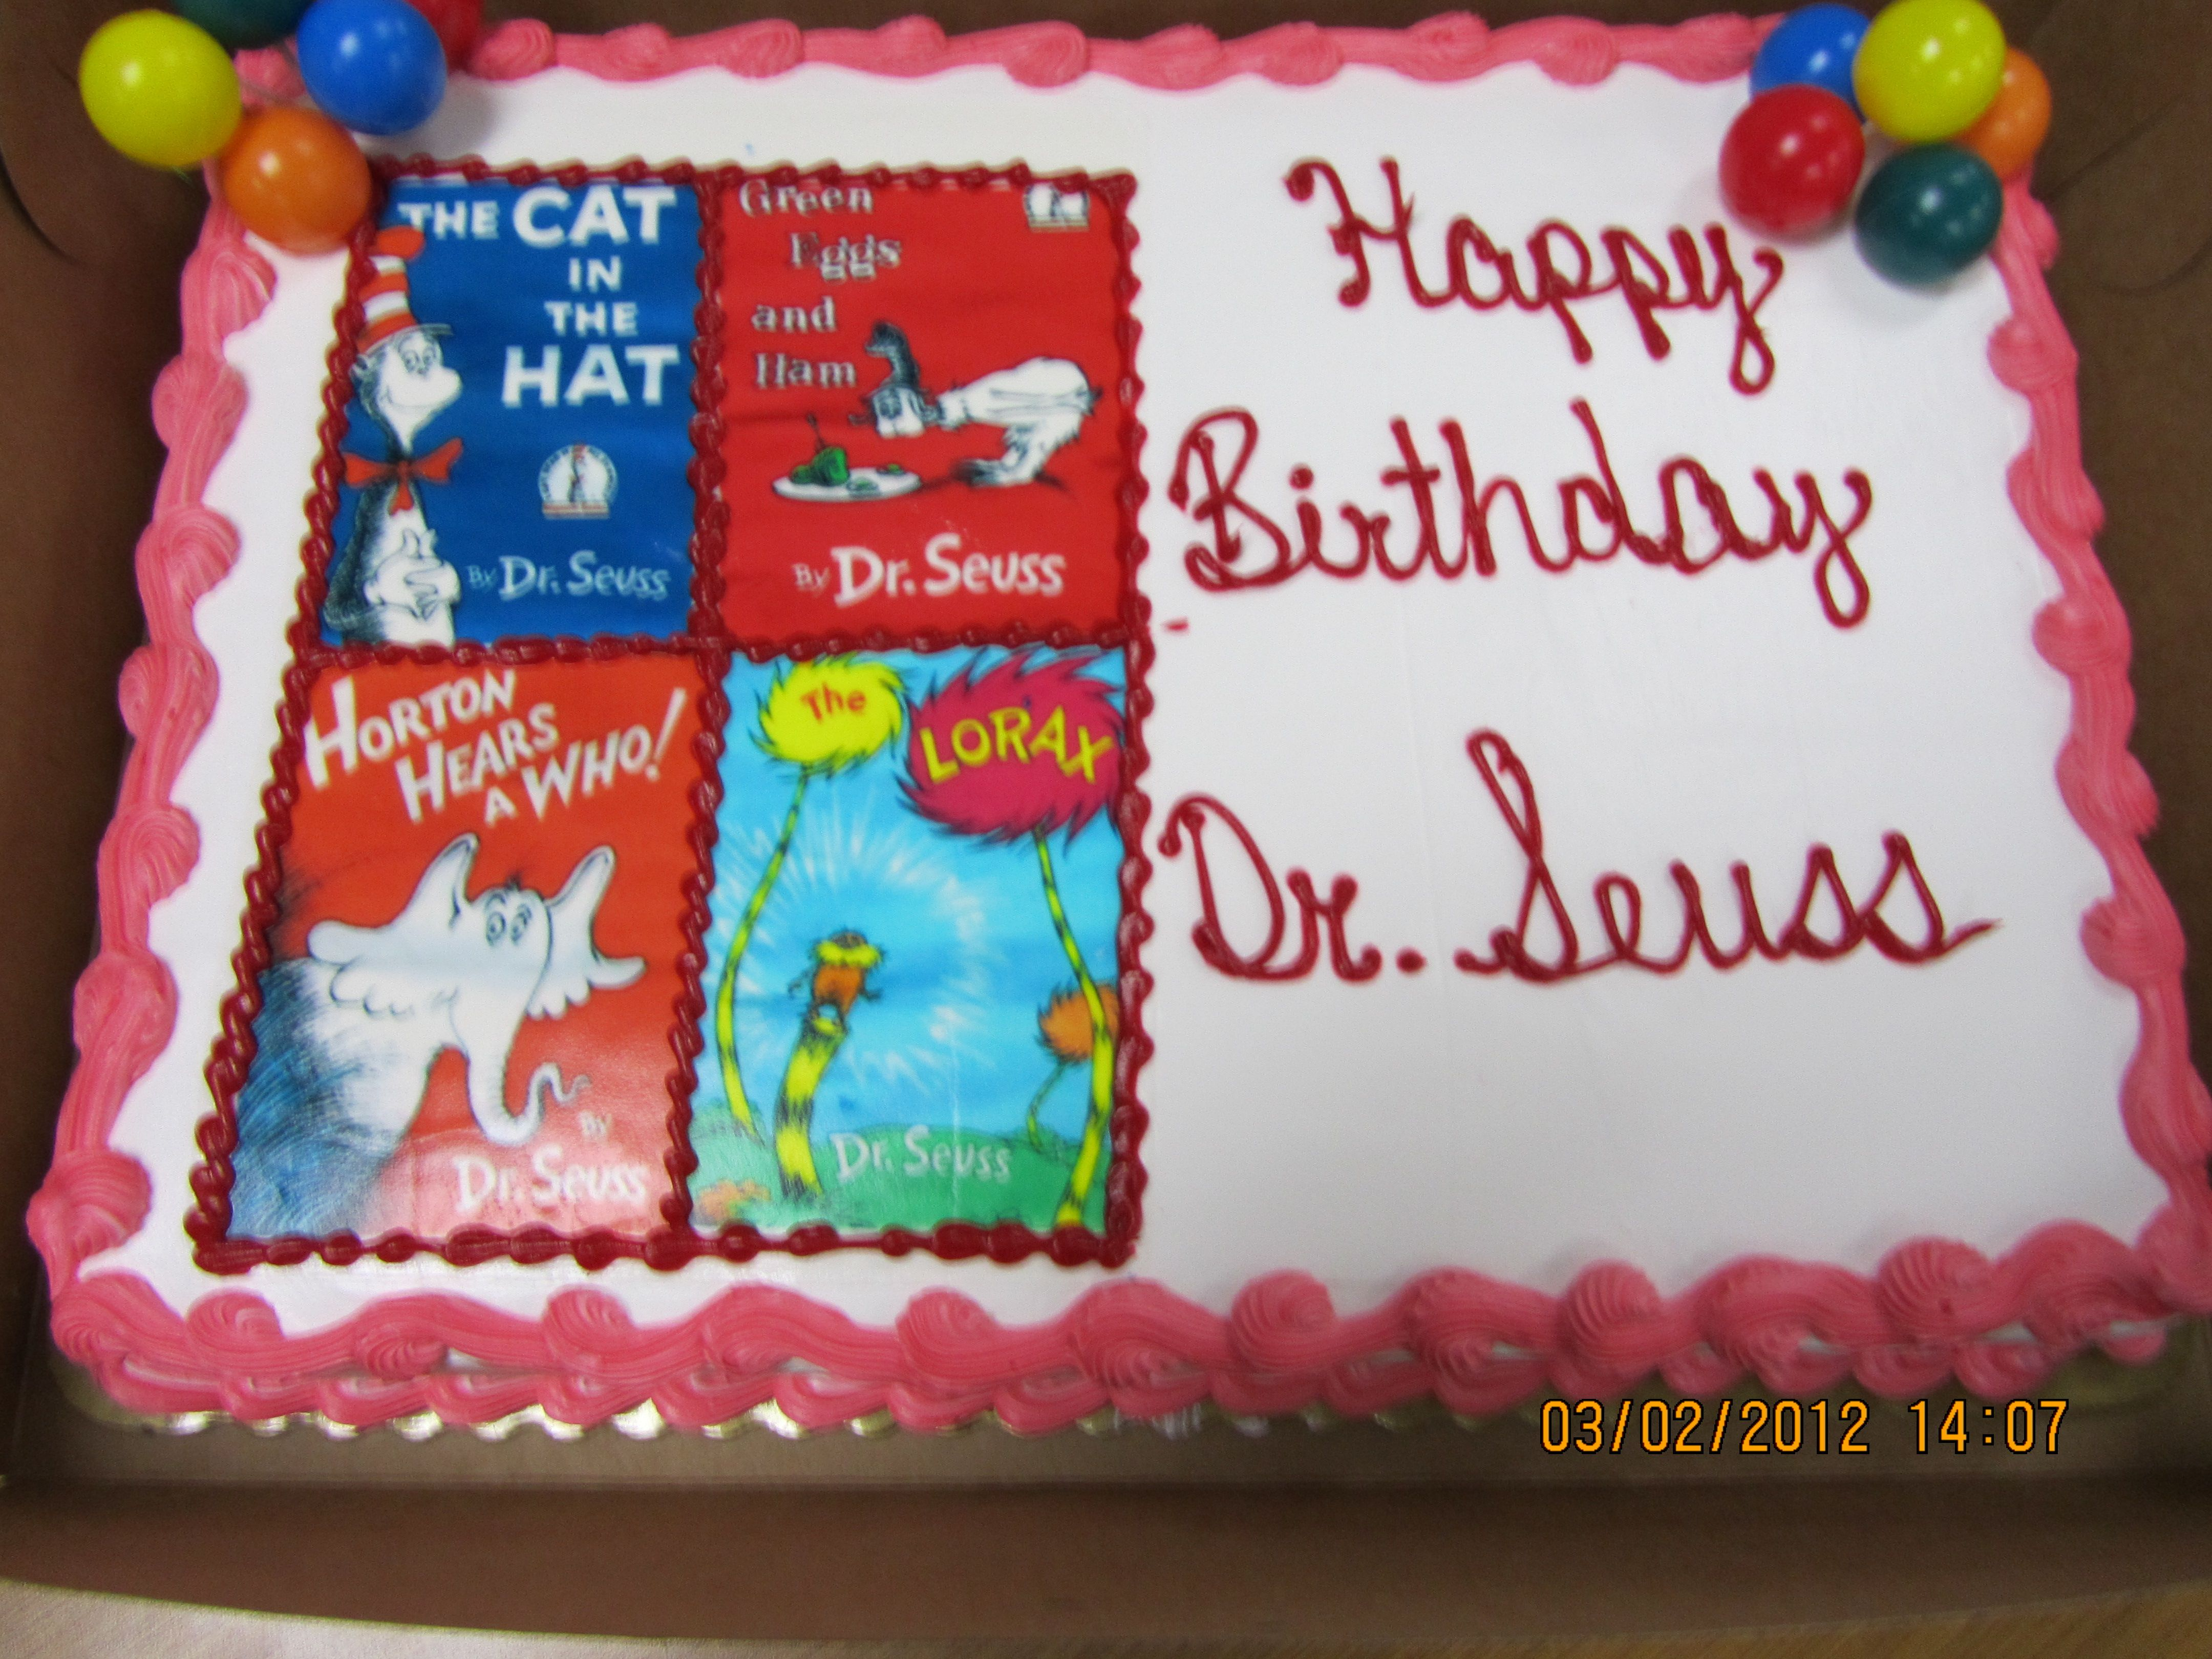 This is the cake my fabulous student teacher brought in for the class today!